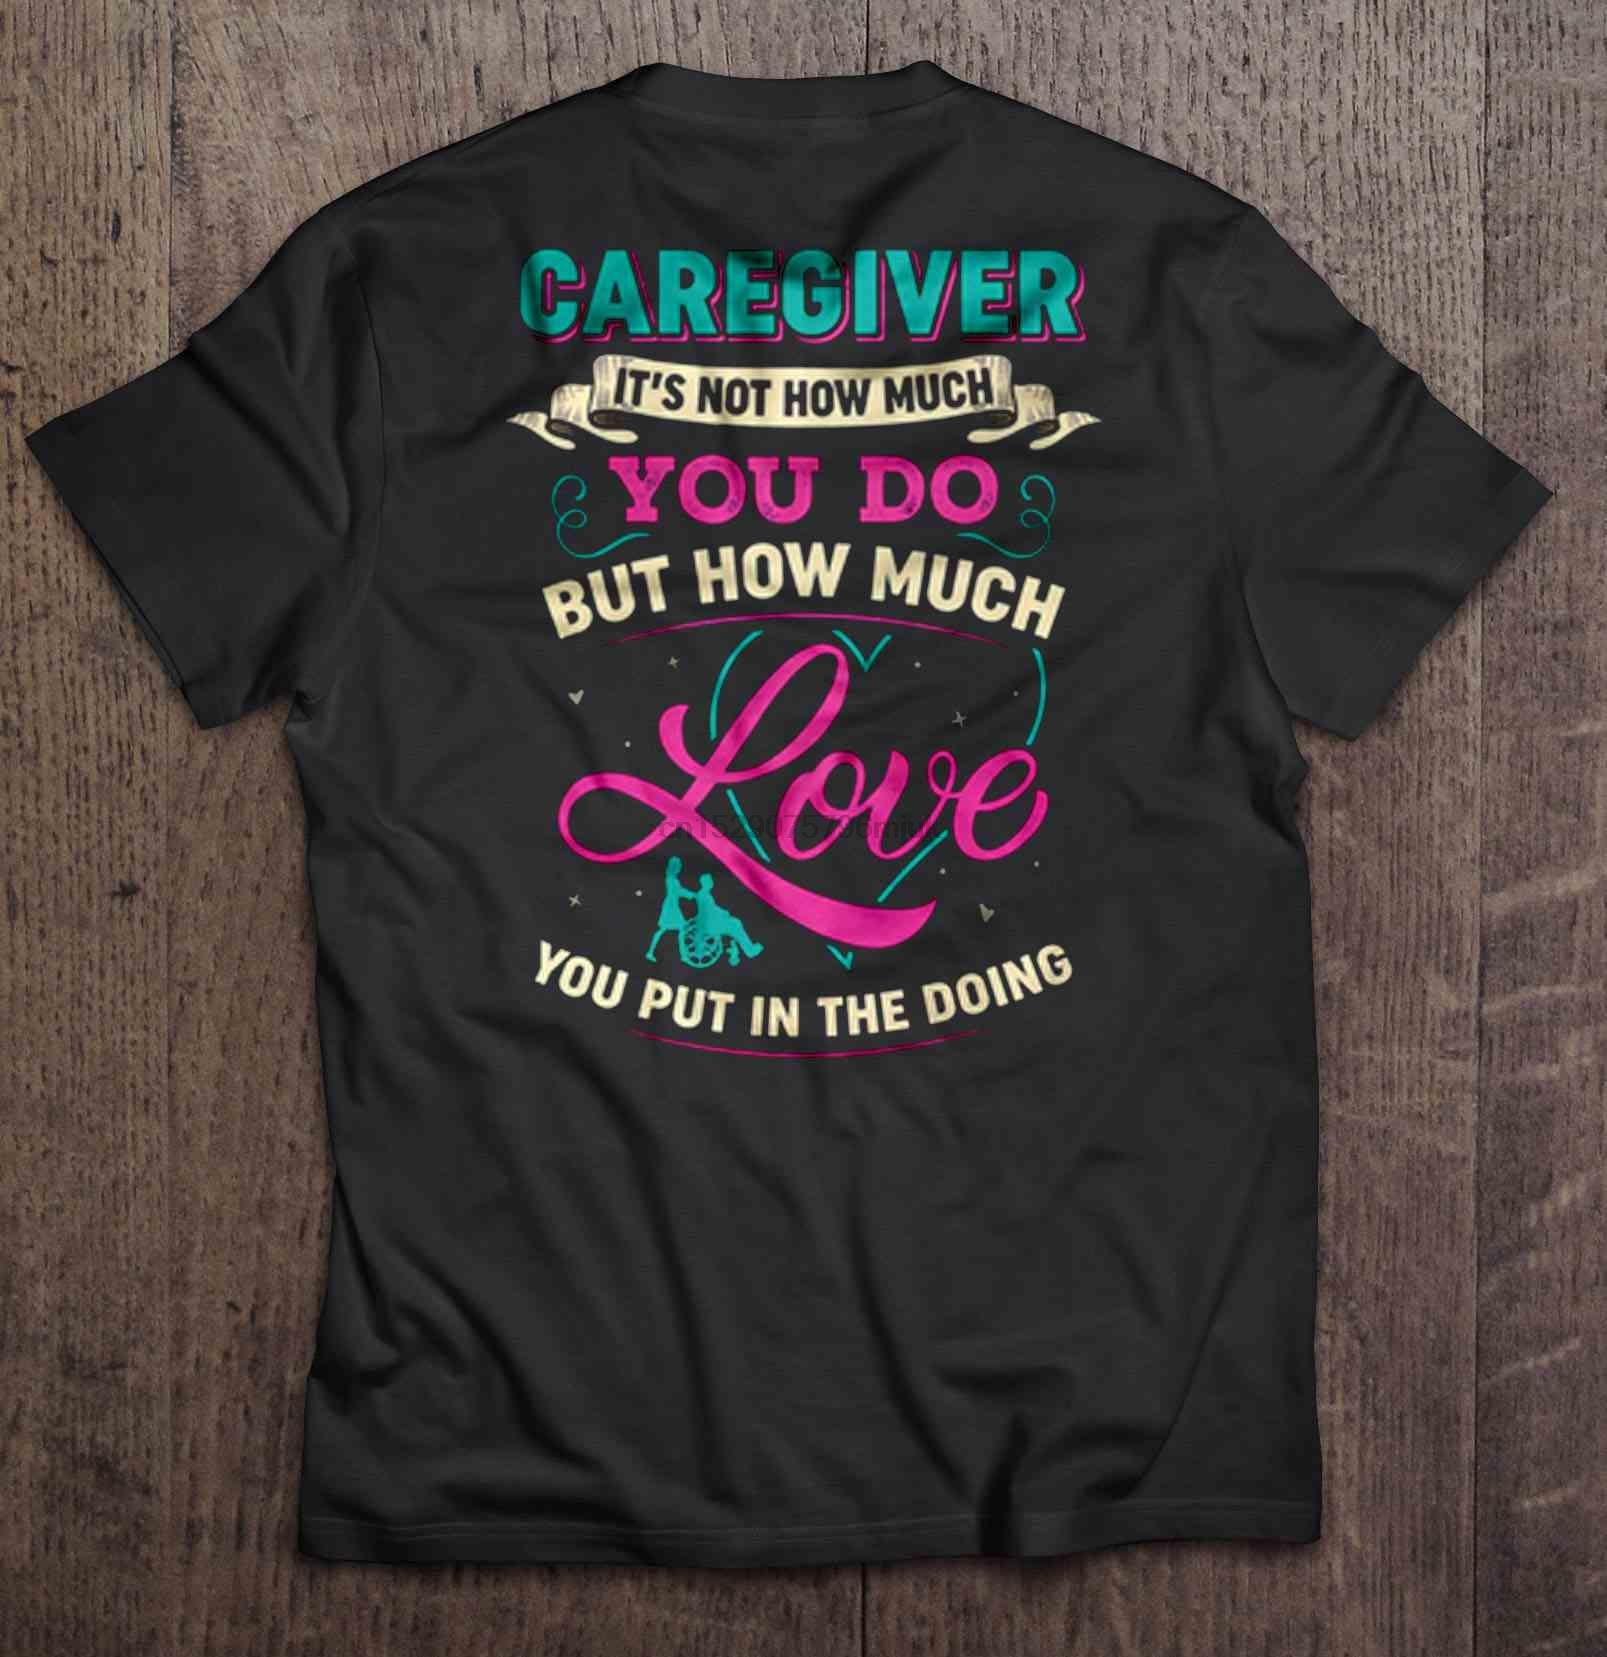 Men t shirt Caregiver It's Not How Much You Do But How Much Love You Put In The Doing Women t-shirt